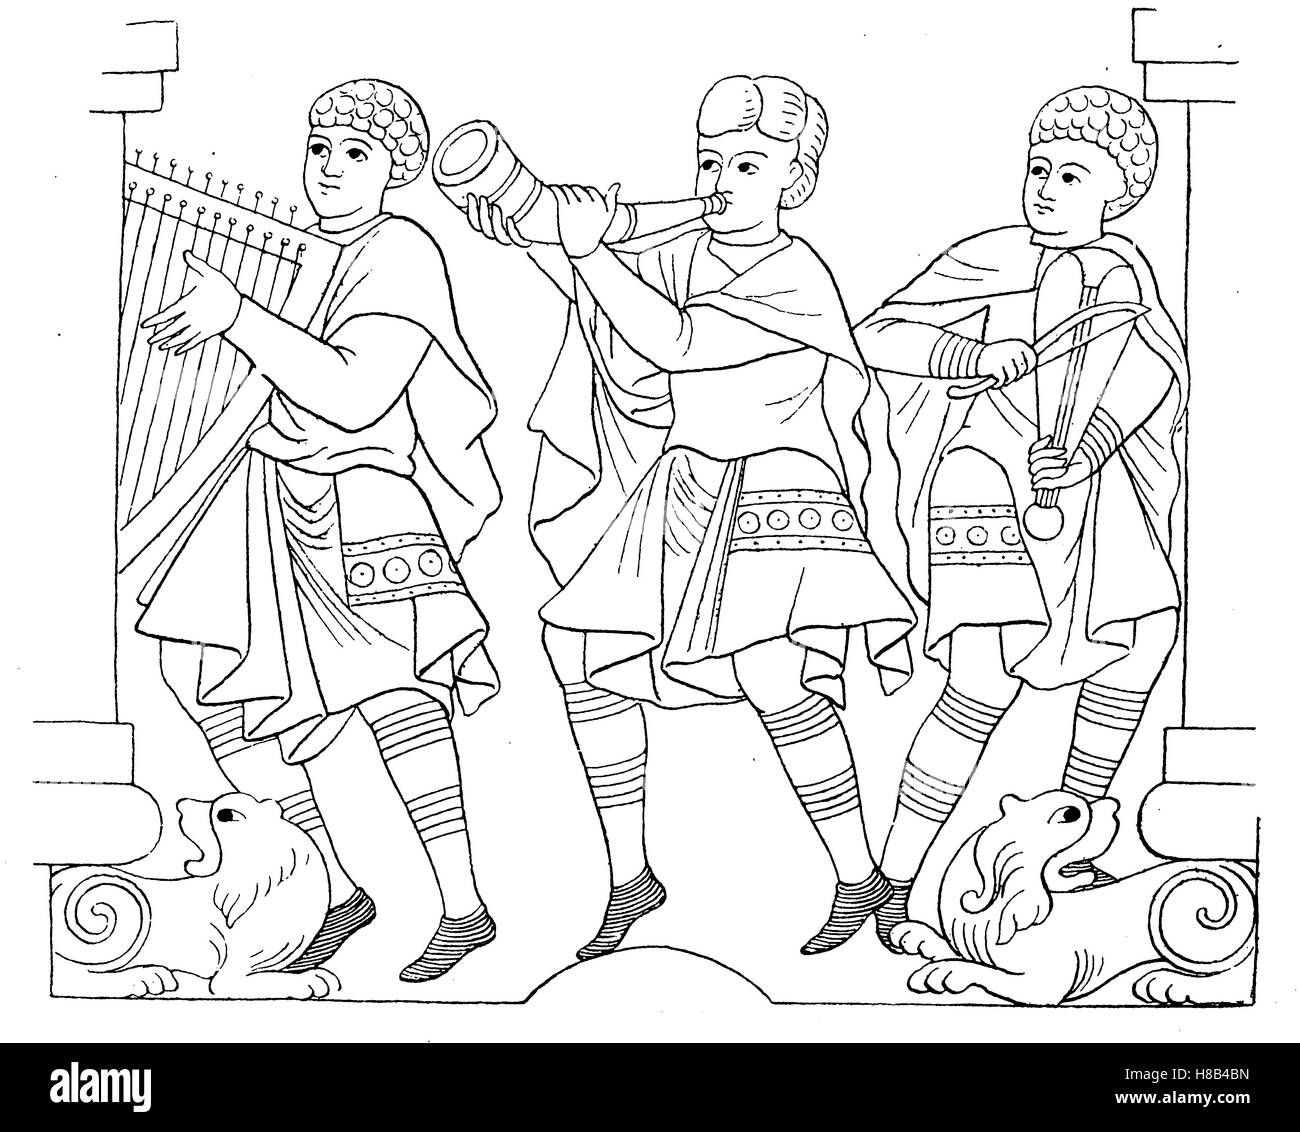 German men in folk costume in the year 1000 , History of fashion, costume story - Stock Image